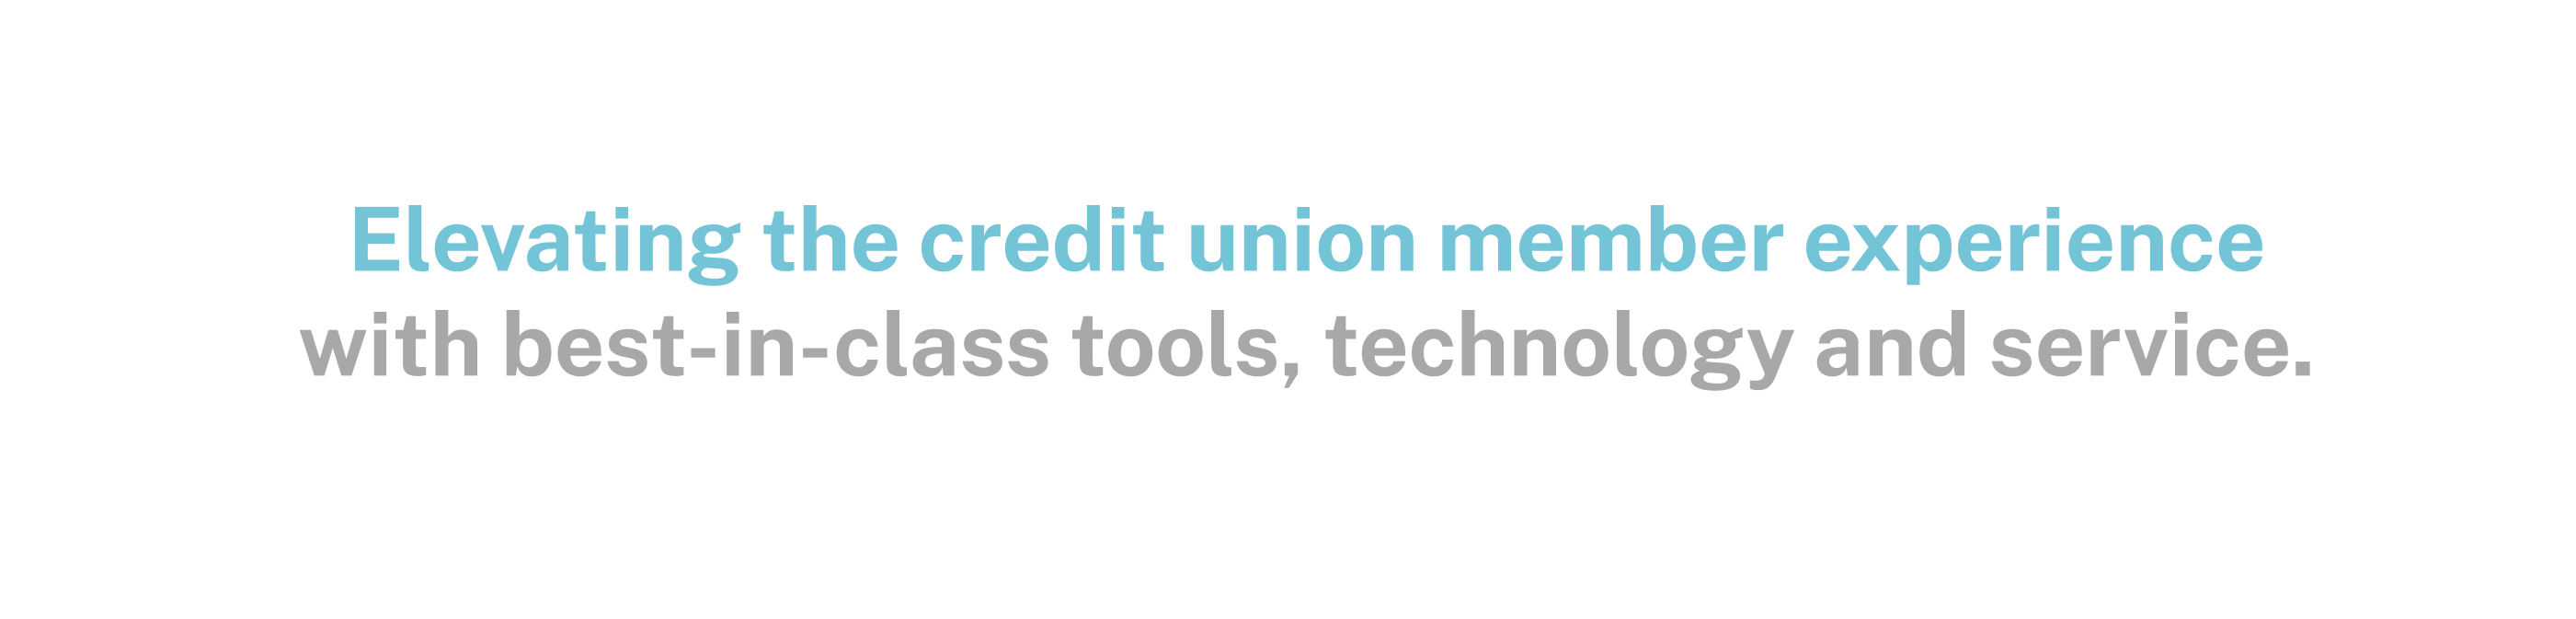 Elevating the credit union member experience with best-in-class tools, technology and service.